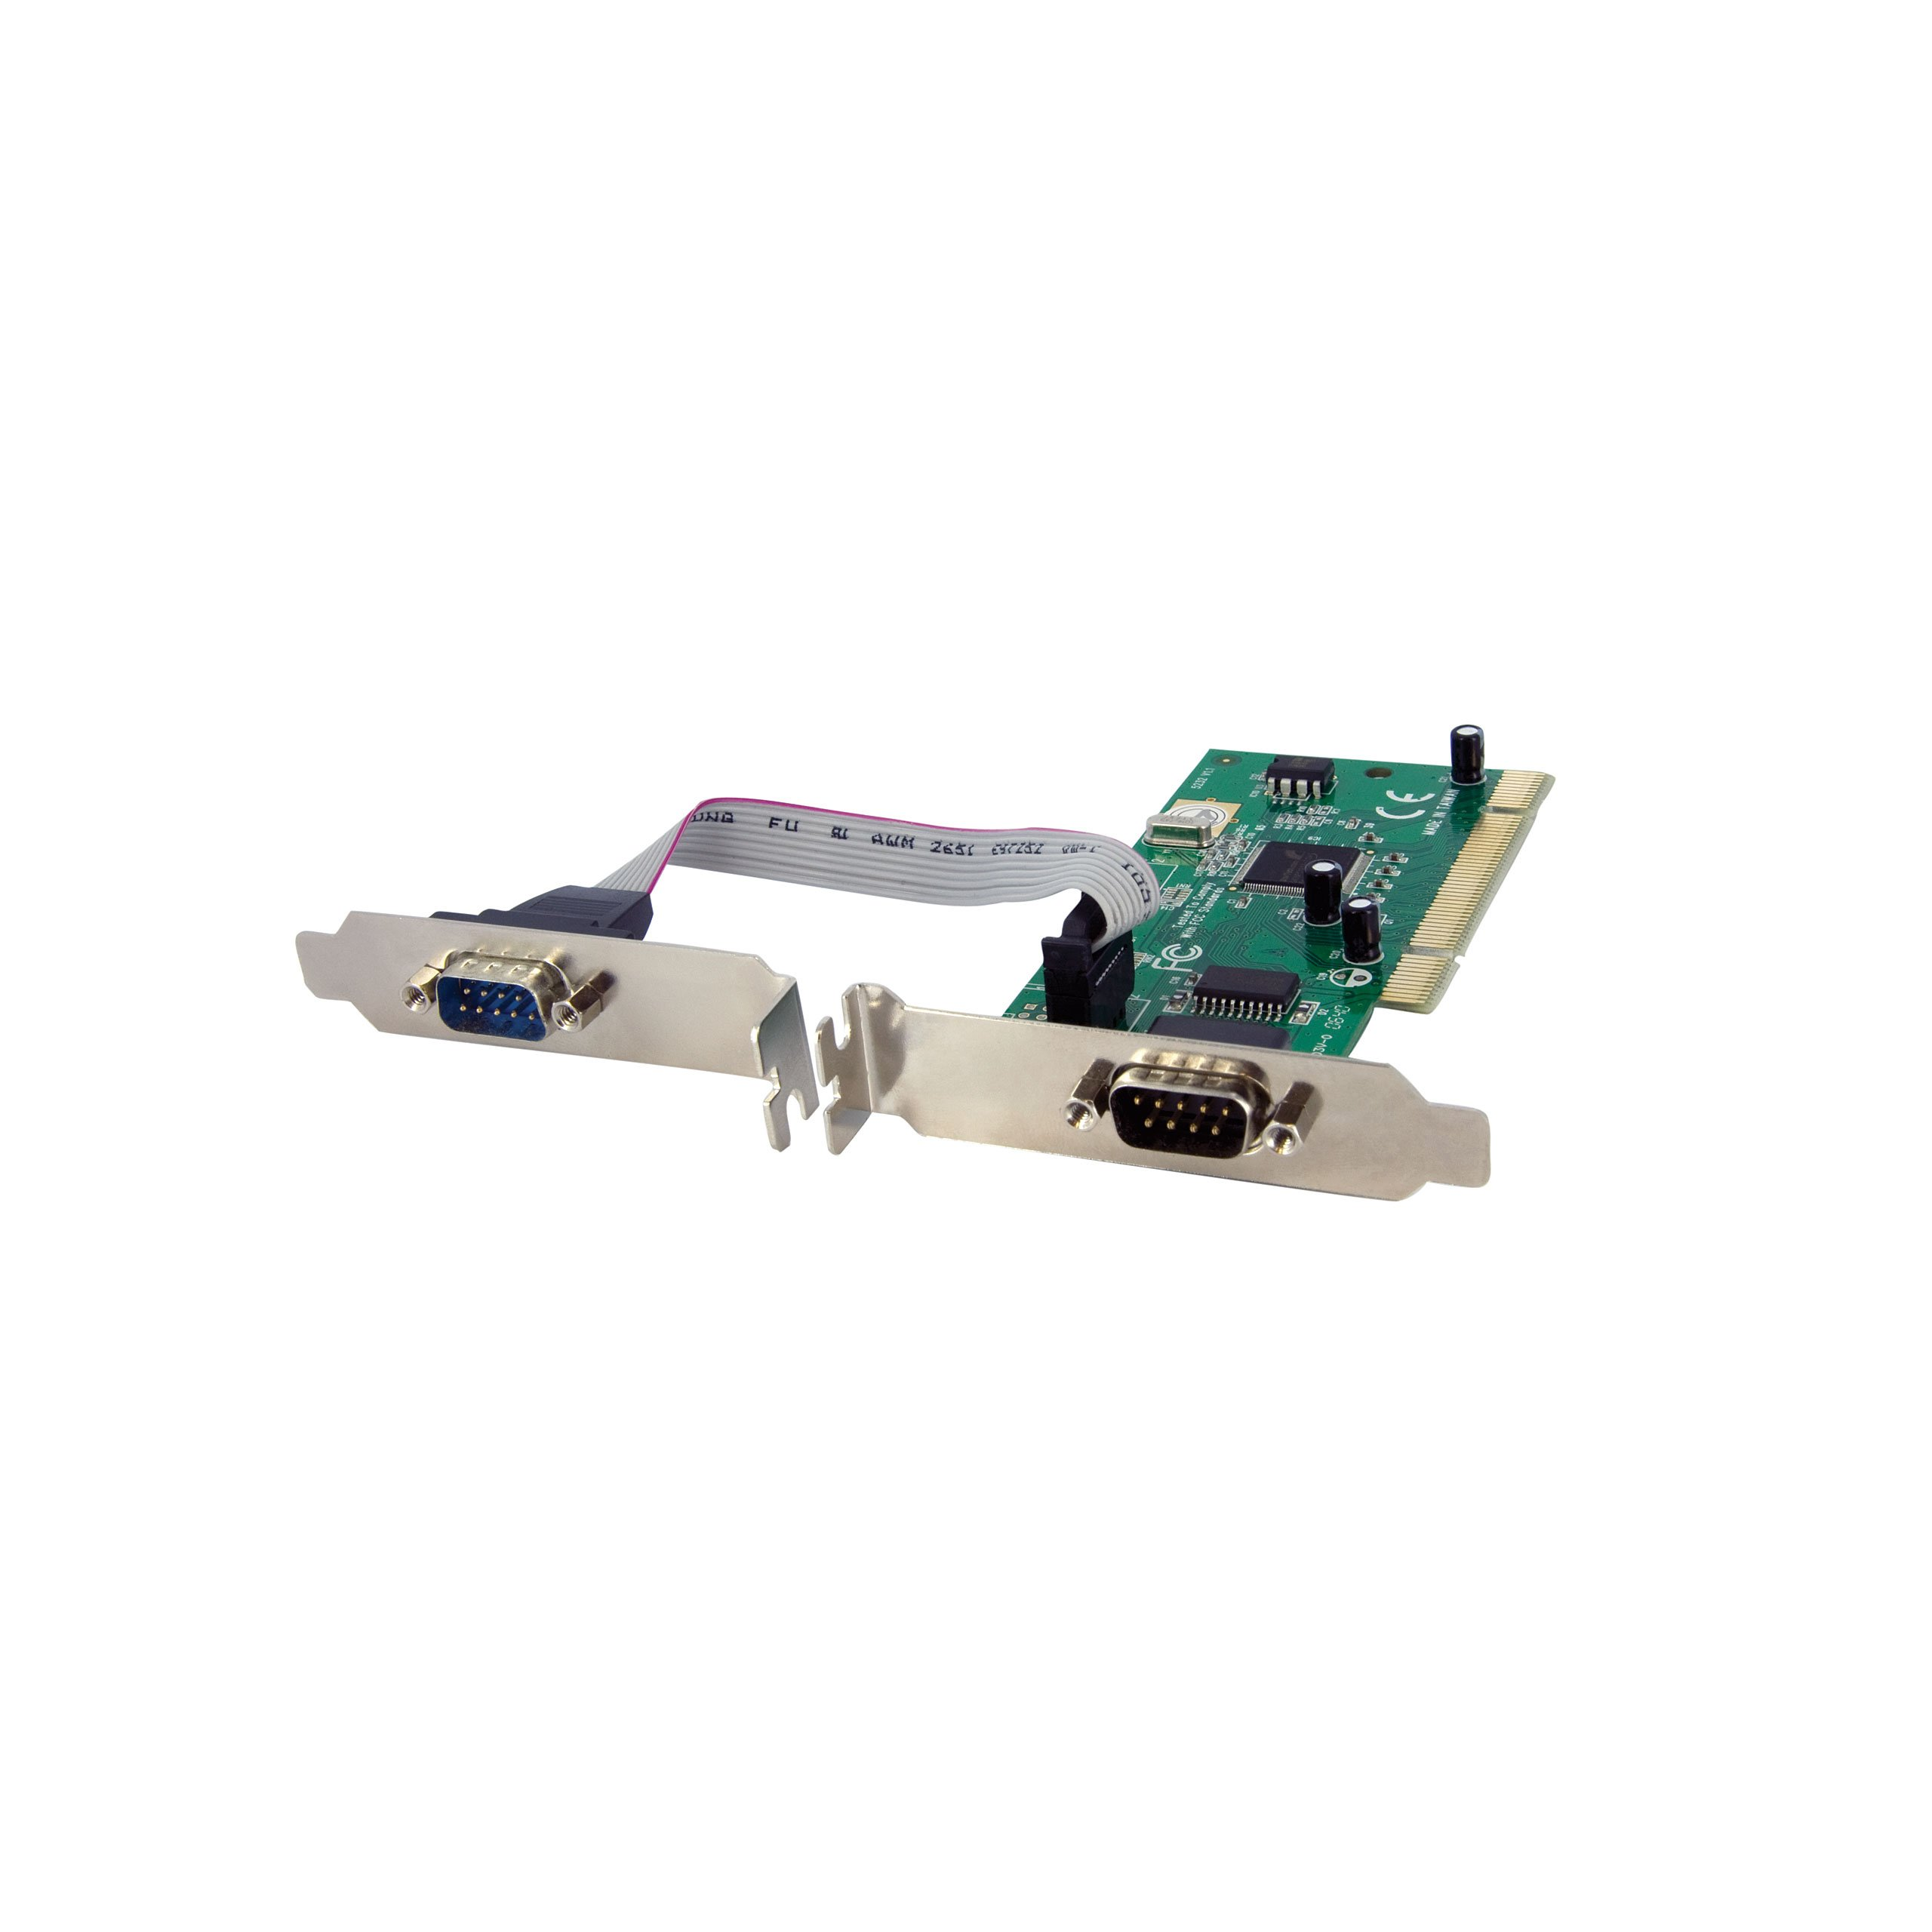 StarTech.com 2 Port PCI RS232 Serial Adapter Card with 16950 UART - Dual Voltage (PCI2S950DV)